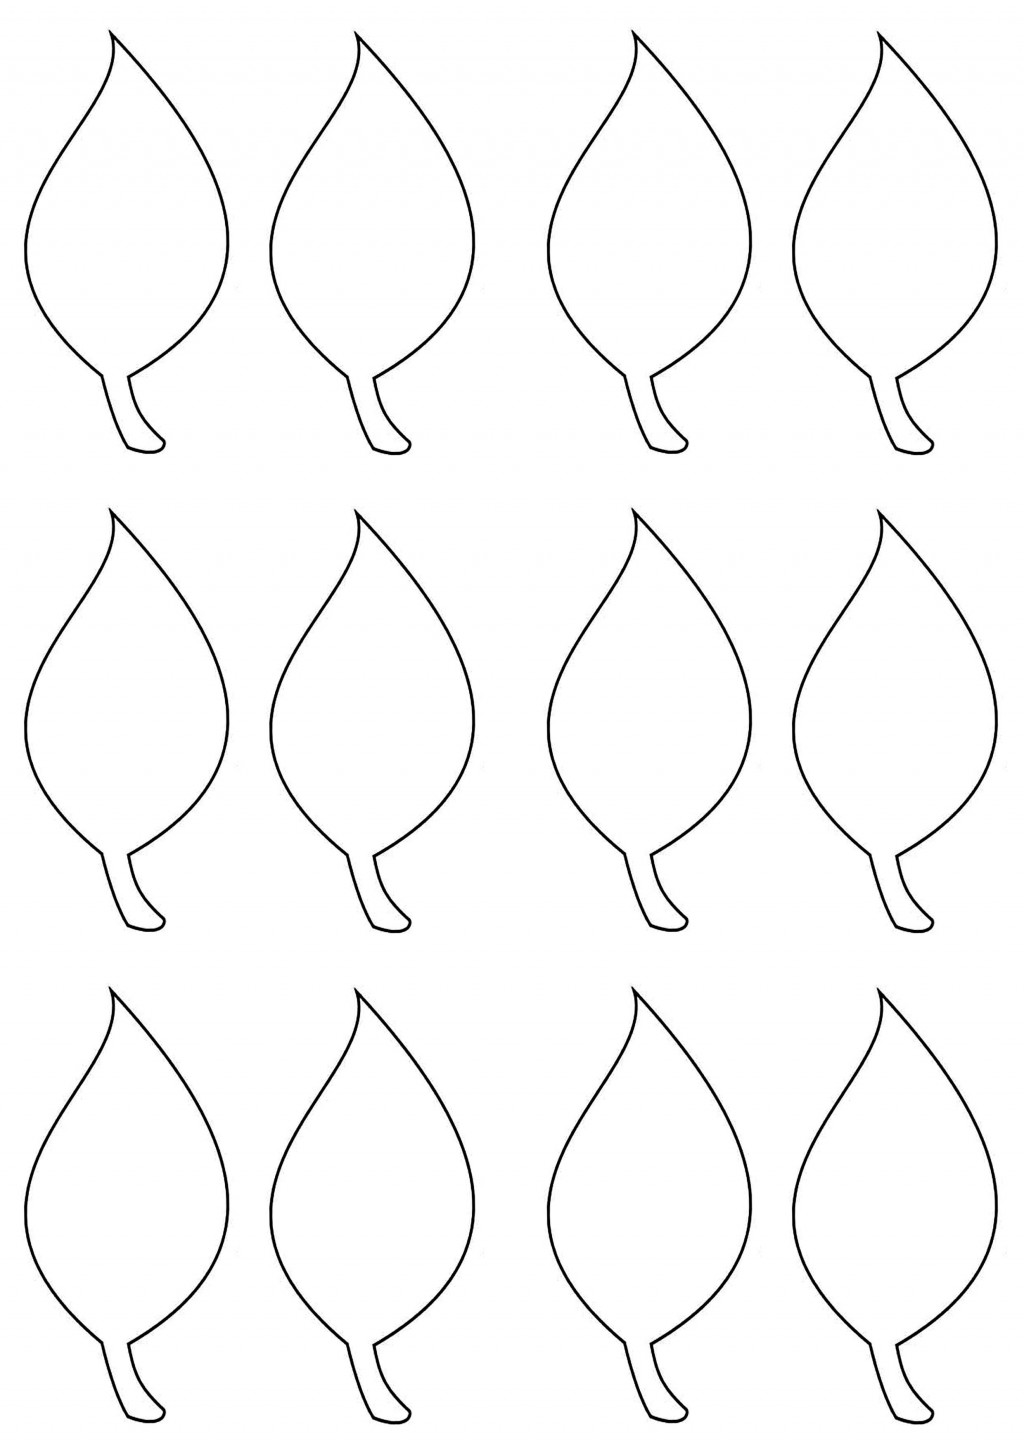 003 Simple Leaf Template With Line Sample  Fall Printable BlankLarge